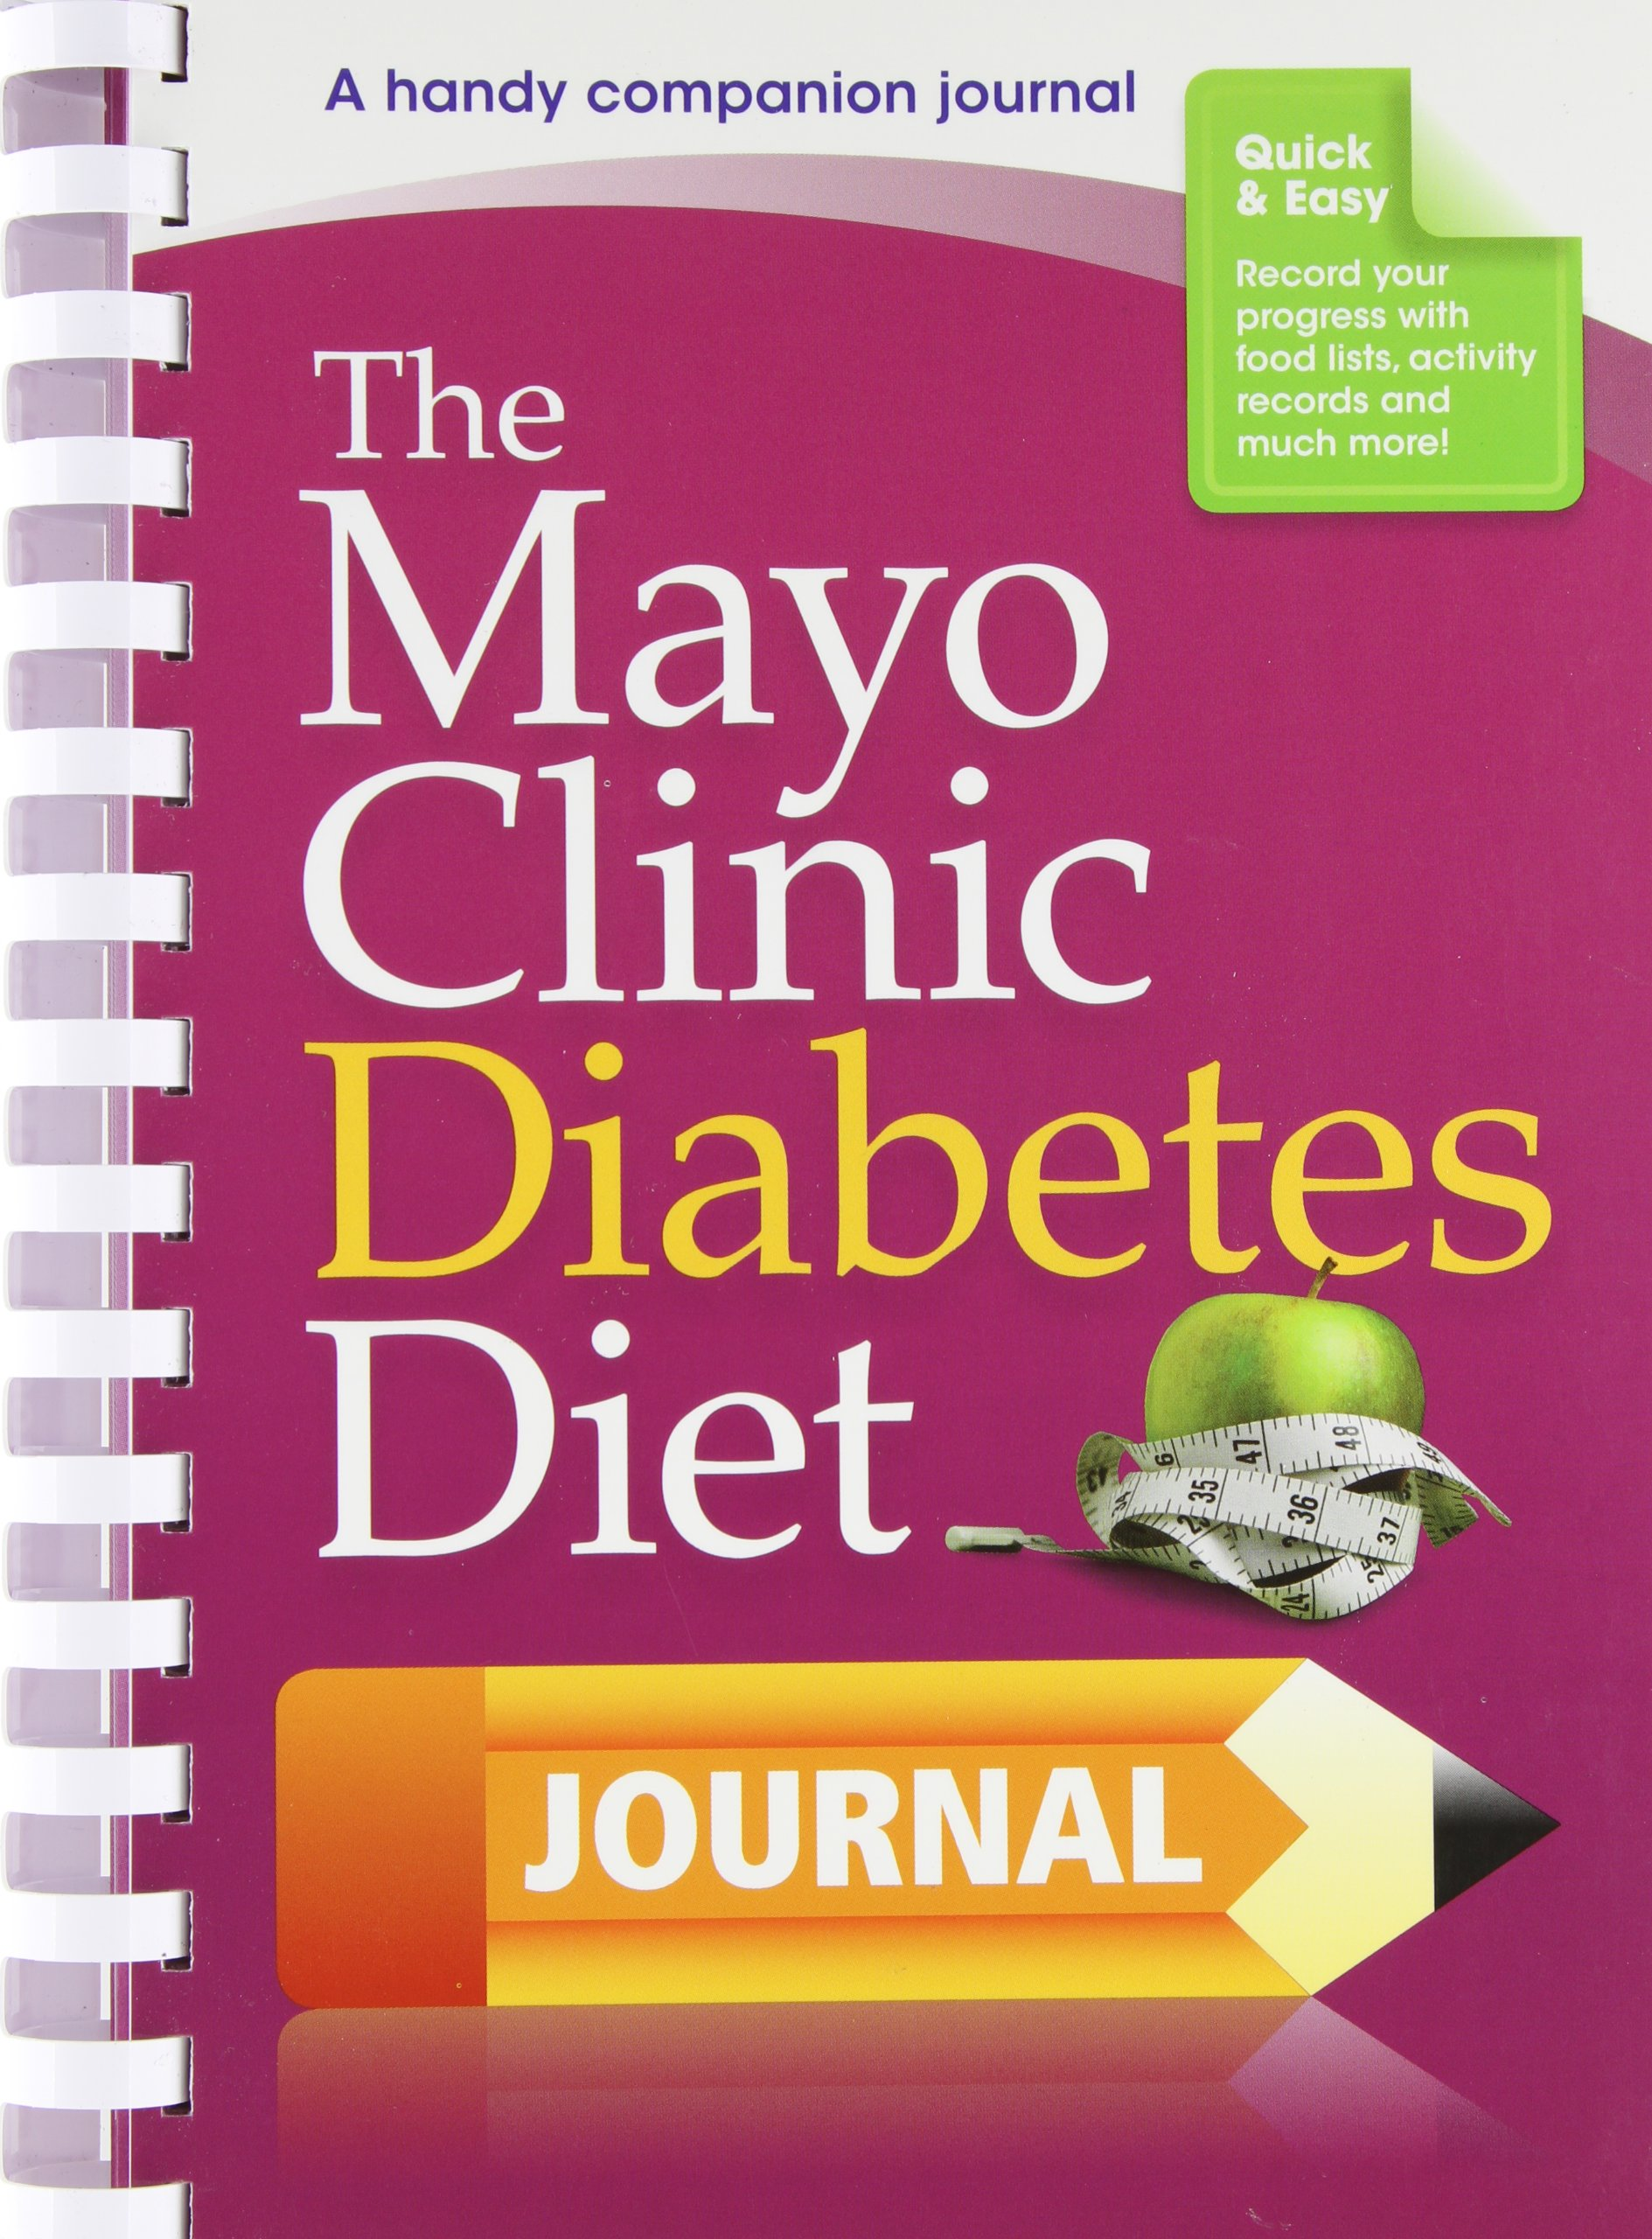 Download The Mayo Clinic Diabetes Diet Journal: A handy companion journal pdf epub